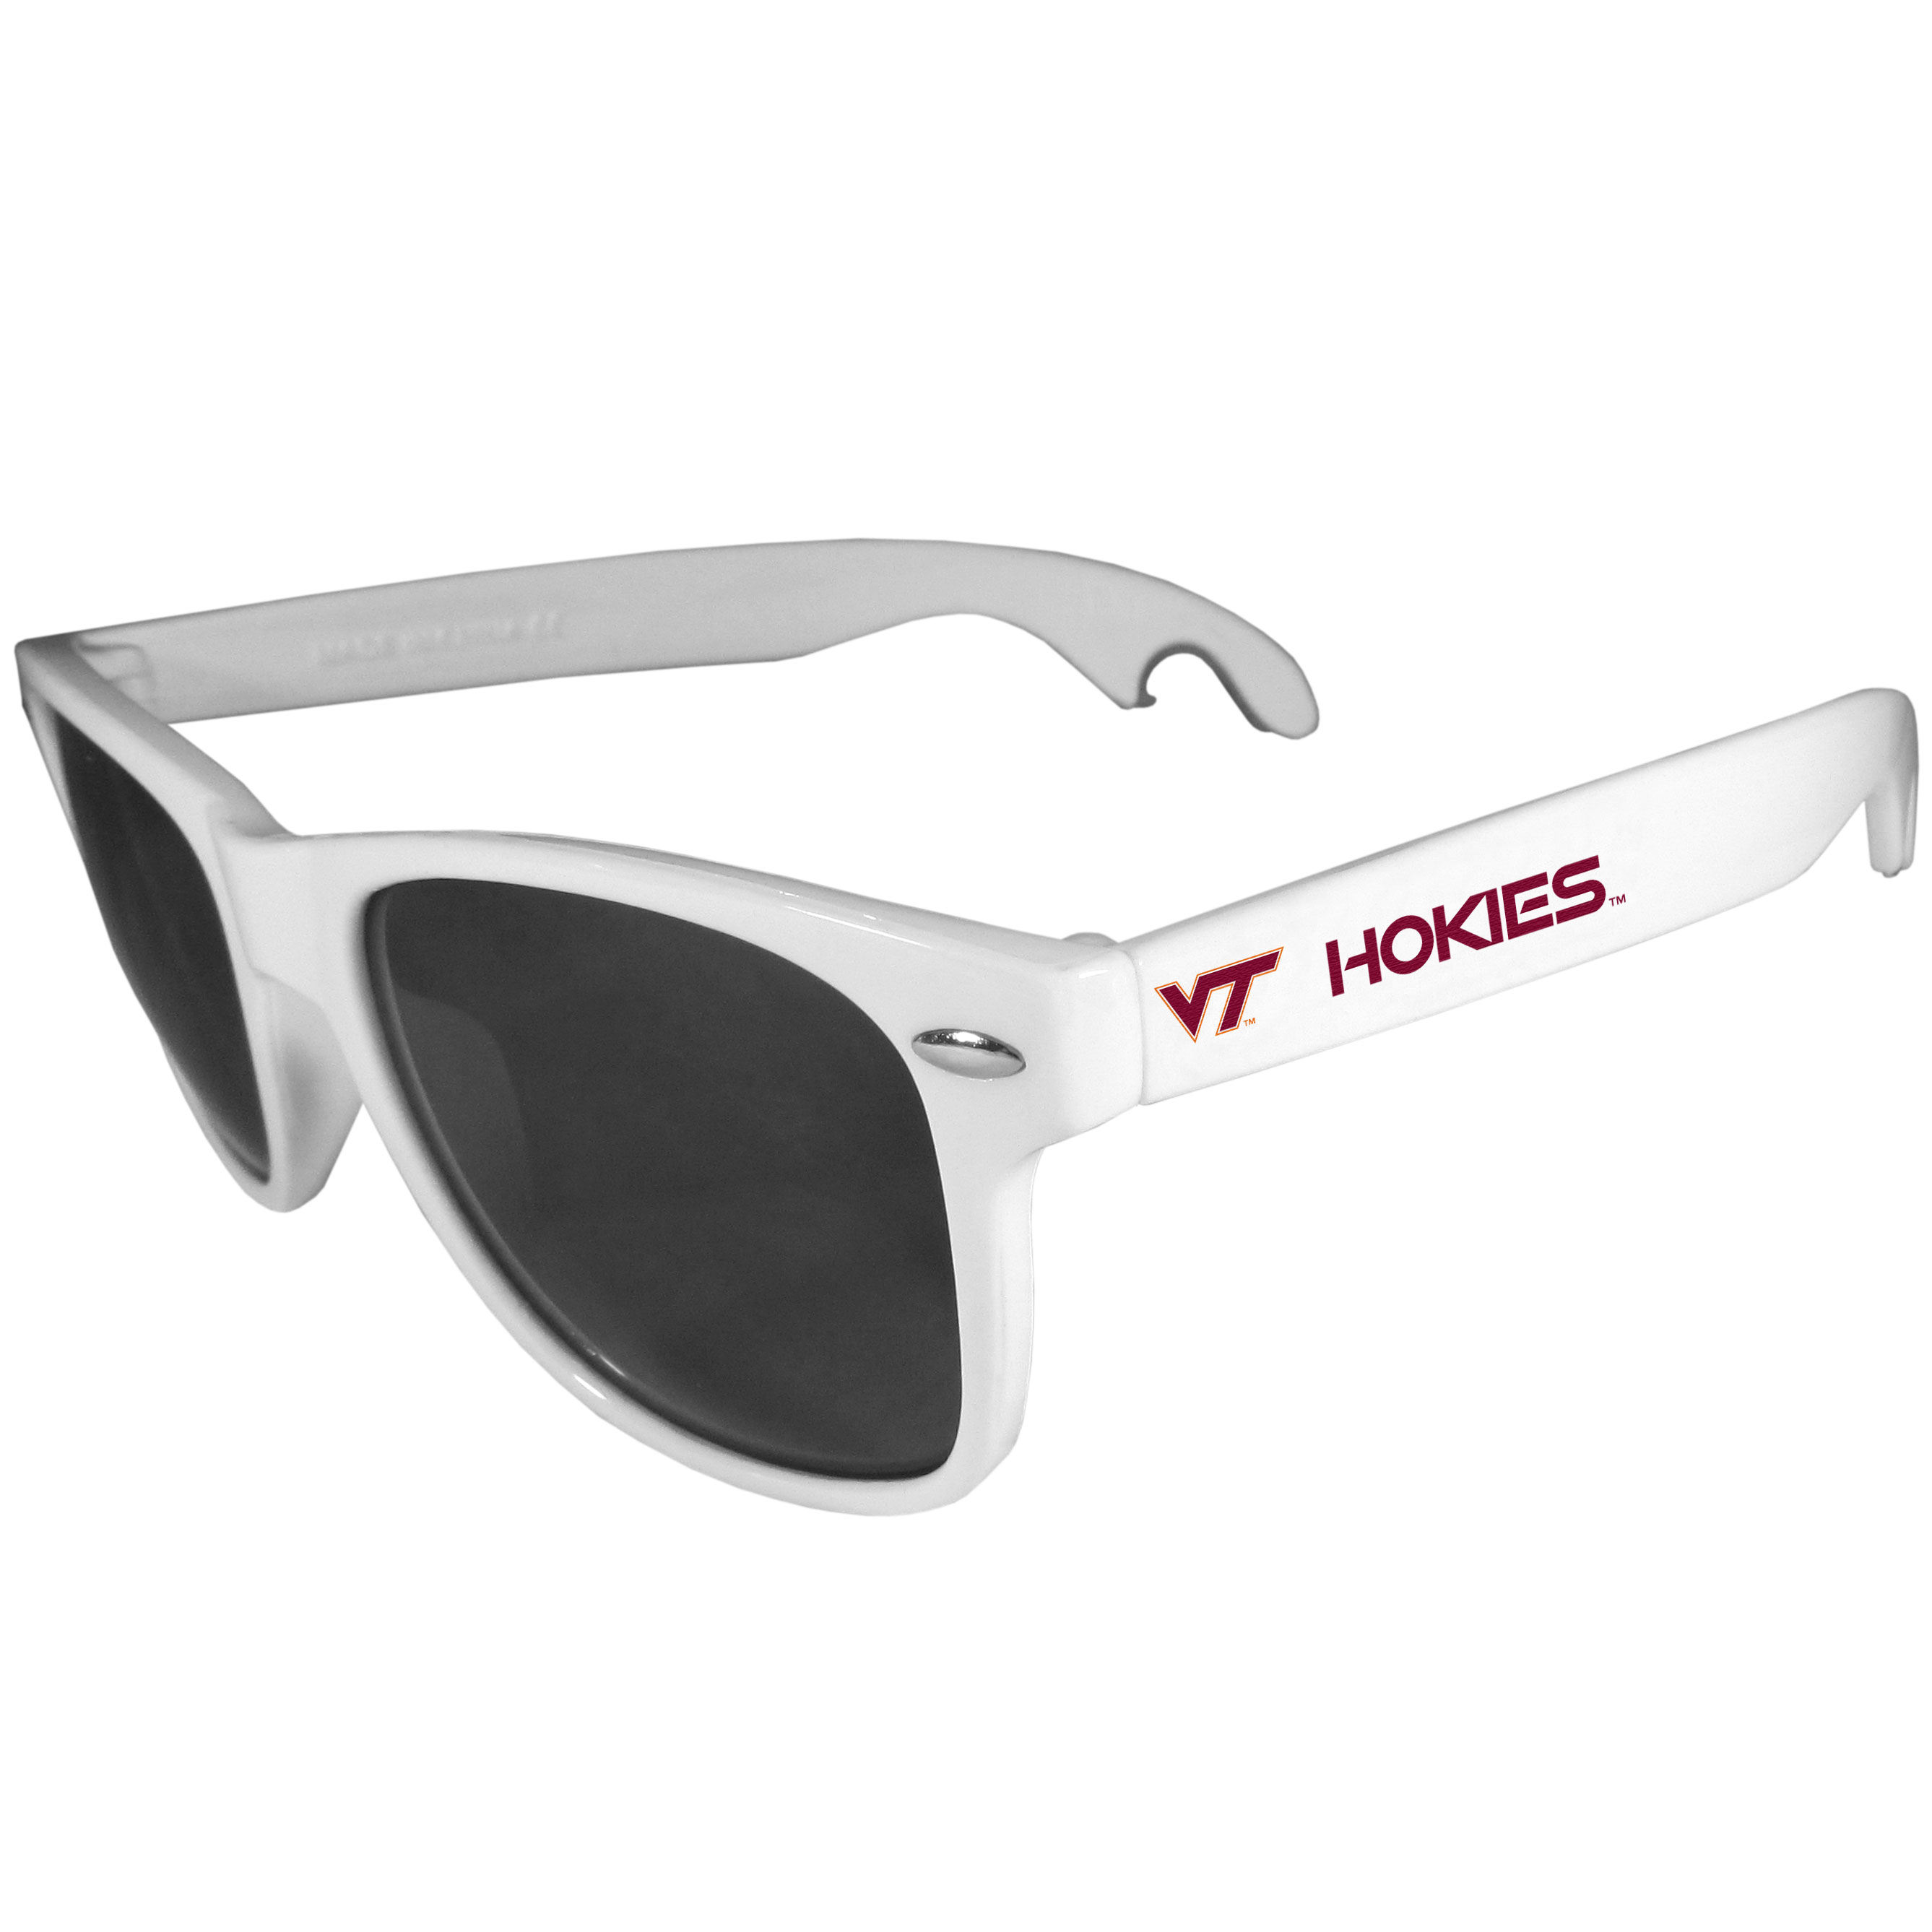 Virginia Tech Hokies Beachfarer Bottle Opener Sunglasses, White - Seriously, these sunglasses open bottles! Keep the party going with these amazing Virginia Tech Hokies bottle opener sunglasses. The stylish retro frames feature team designs on the arms and functional bottle openers on the end of the arms. Whether you are at the beach or having a backyard BBQ on game day, these shades will keep your eyes protected with 100% UVA/UVB protection and keep you hydrated with the handy bottle opener arms.